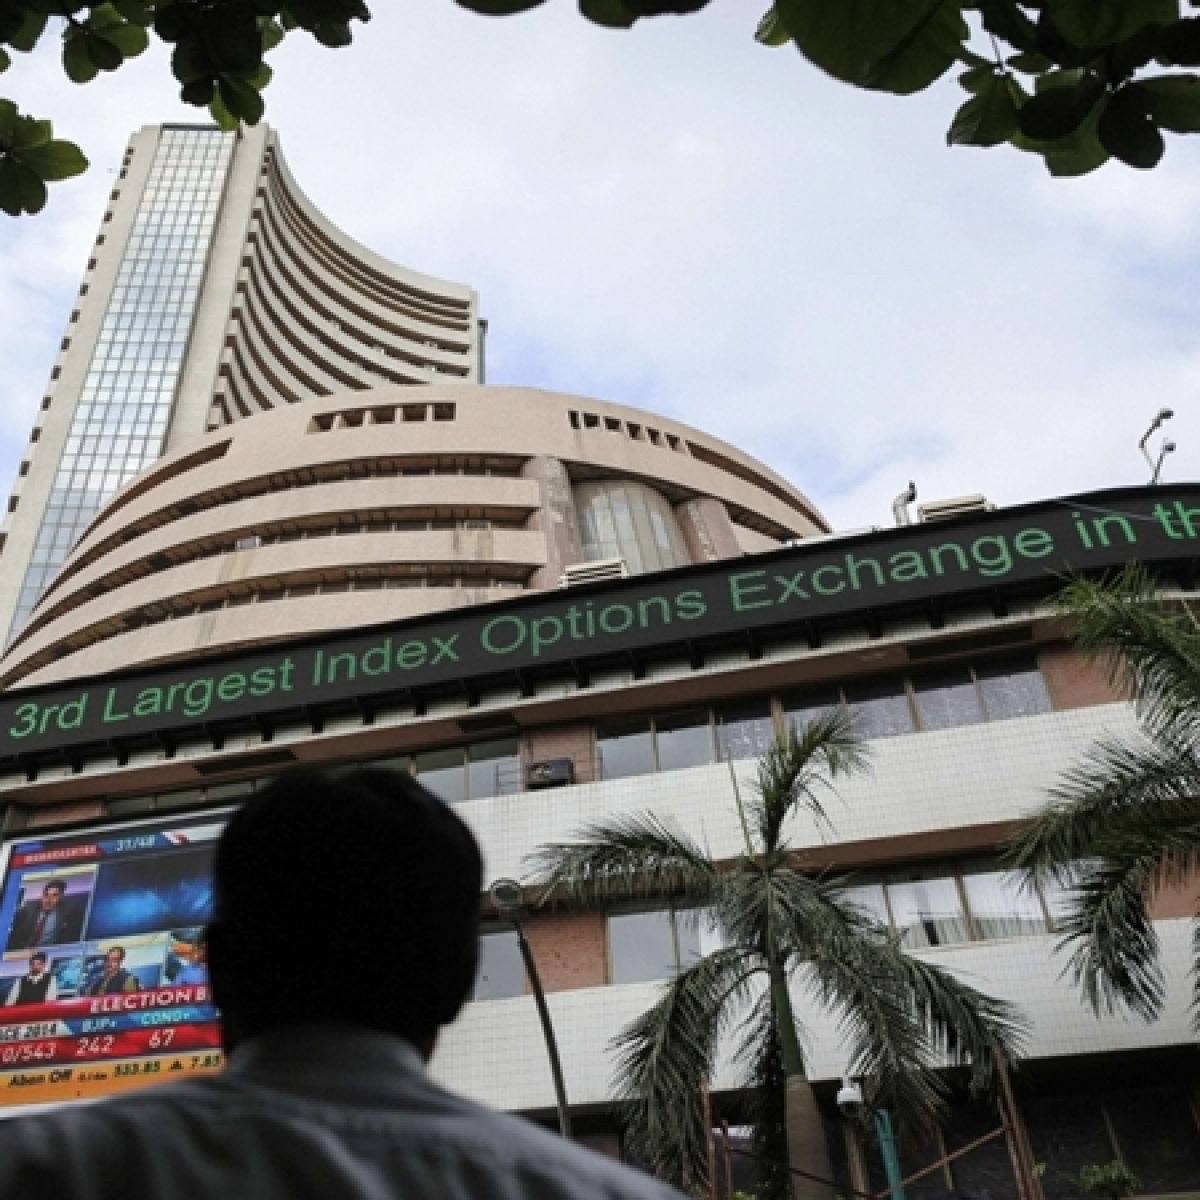 Market Update: Sensex climbs 1,300 points as global markets improve amid coronavirus outbreak